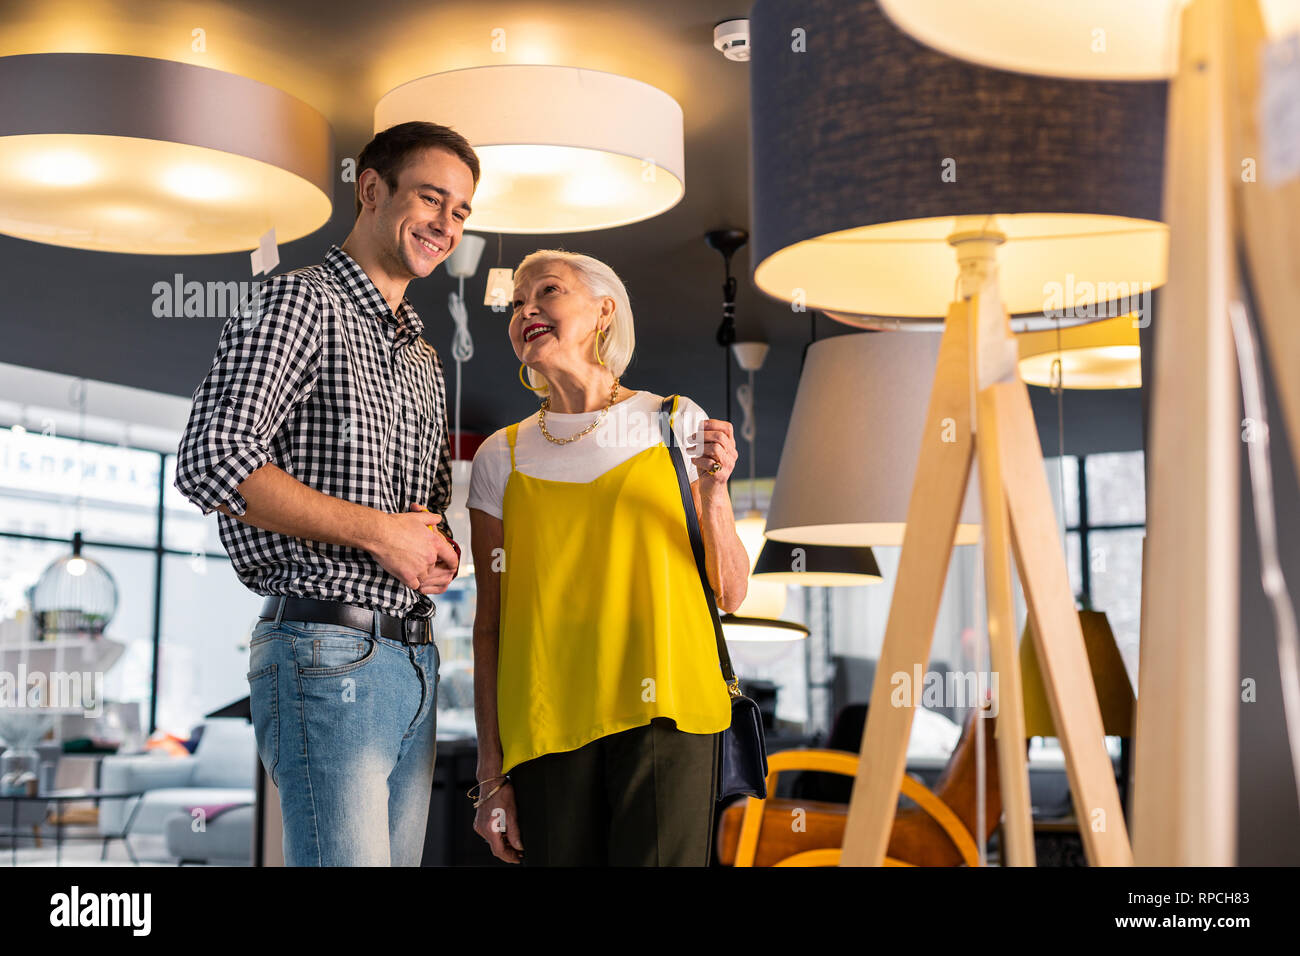 Happy stylish aging mother looking affectionately at adult handsome son Stock Photo